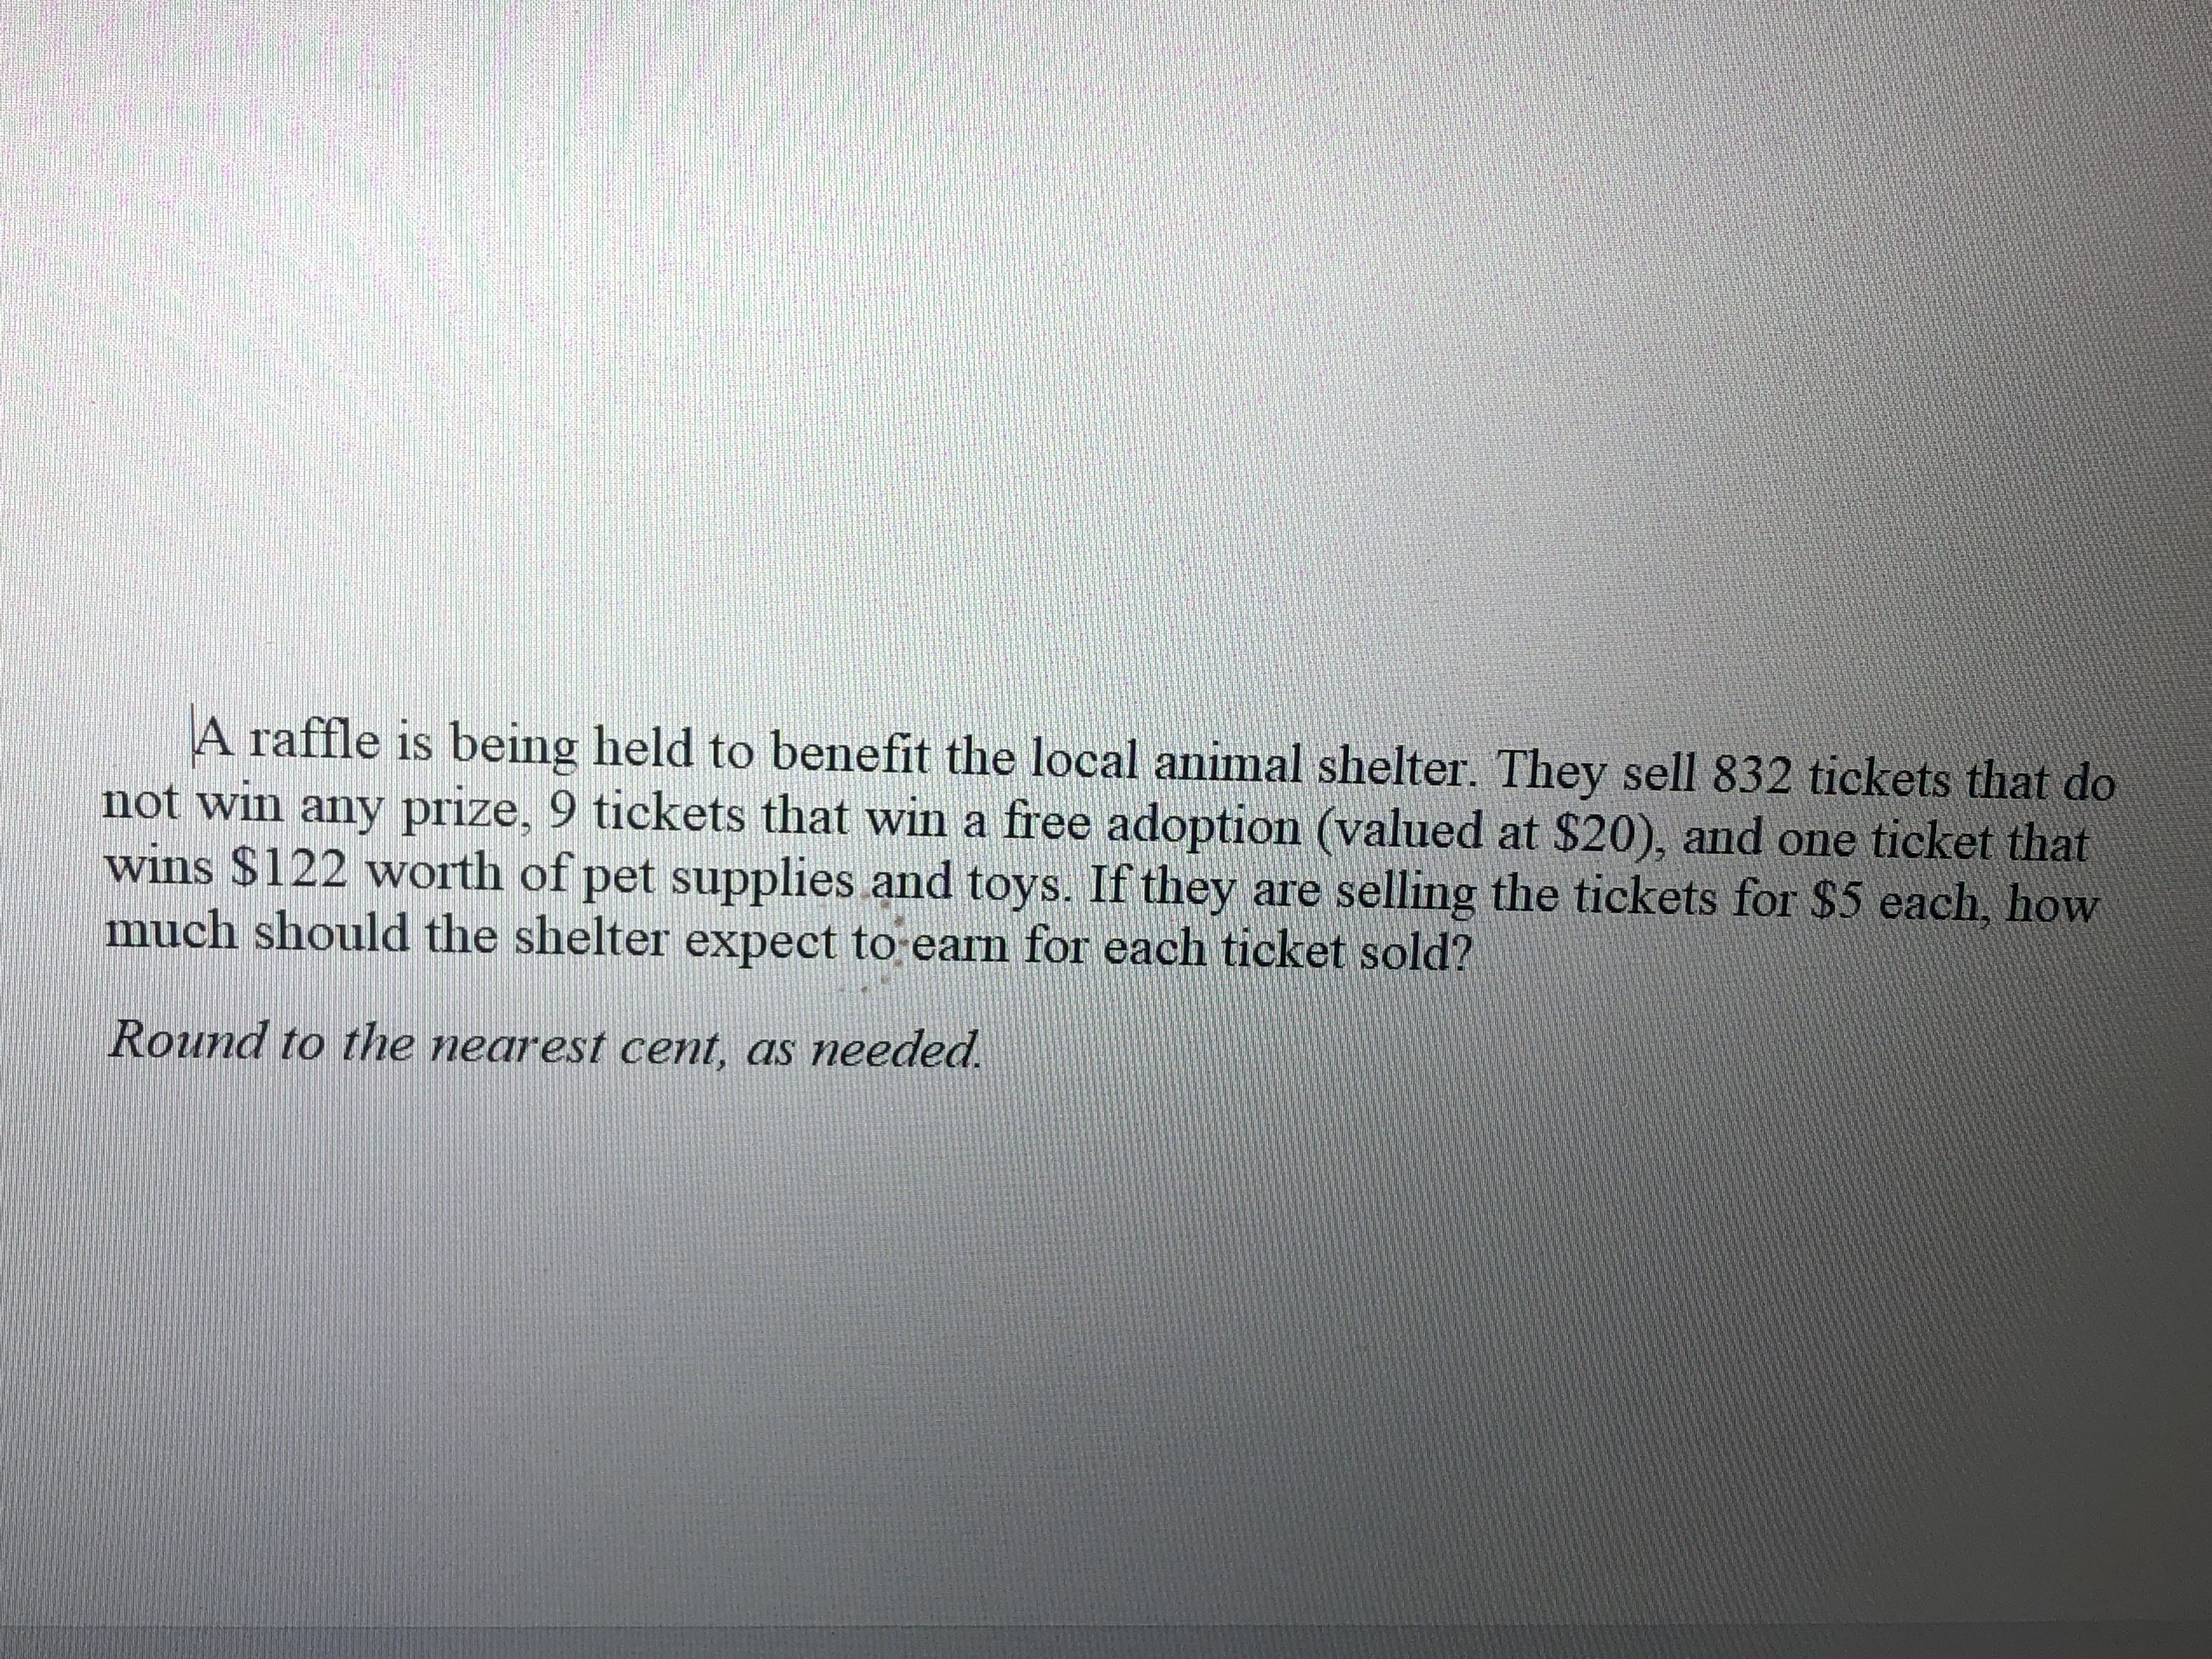 A raffle is being held to benefit the local animal shelter. They sell 832 tickets that do not win any prize, 9 tickets that win a free adoption (valued at $20), and one ticket that wins $122 worth of pet supplies and toys. If they are selling the tickets for $5 each, how much should the shelter expect to earn for each ticket sold? Round to the nearest cent, as needed